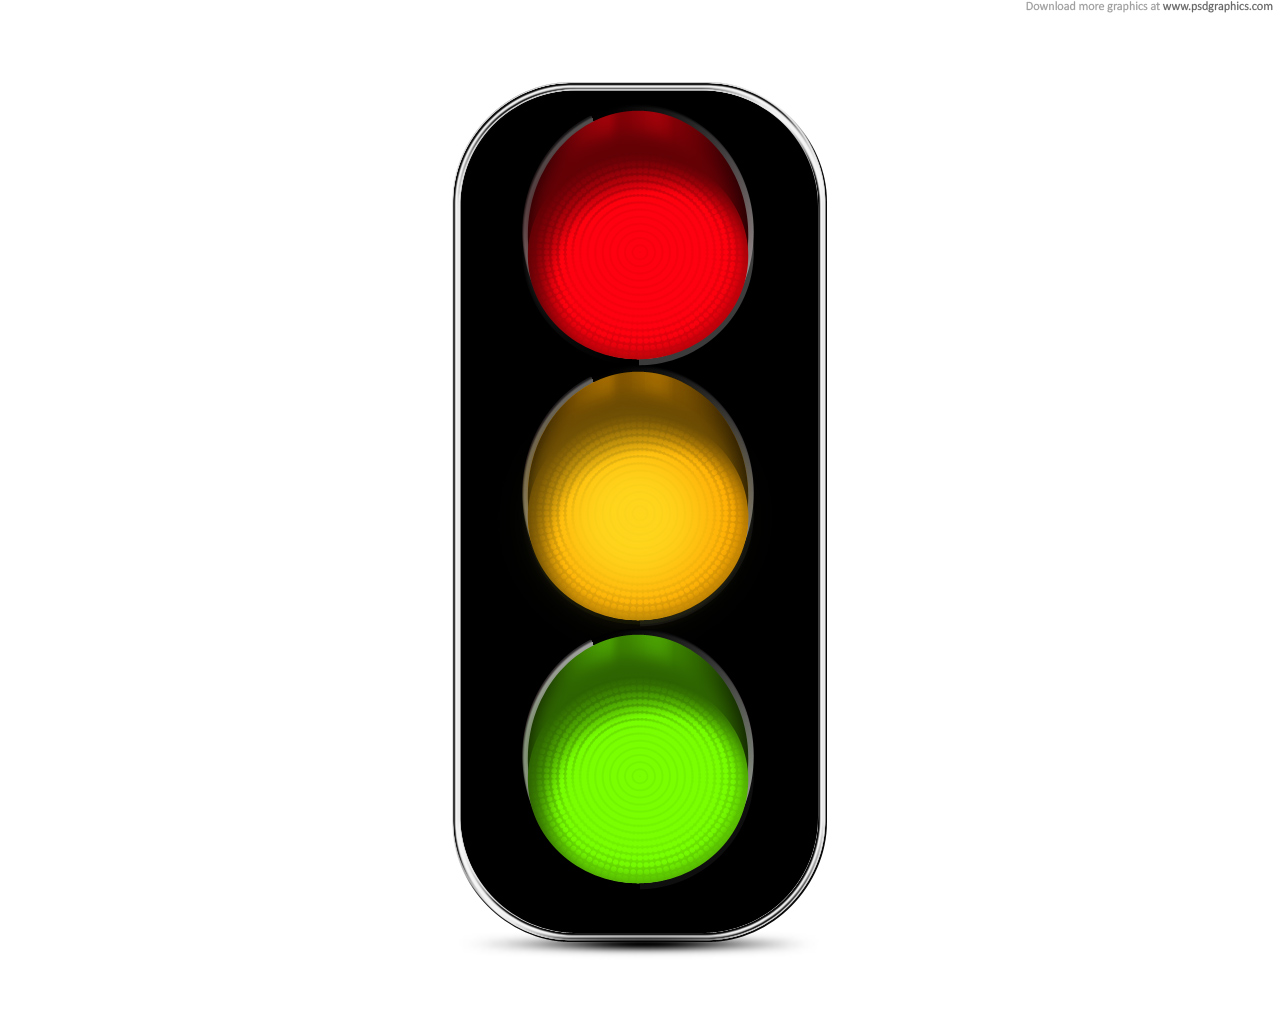 Traffic Light clipart light source Traffic Template Clip PSDGraphics Clip